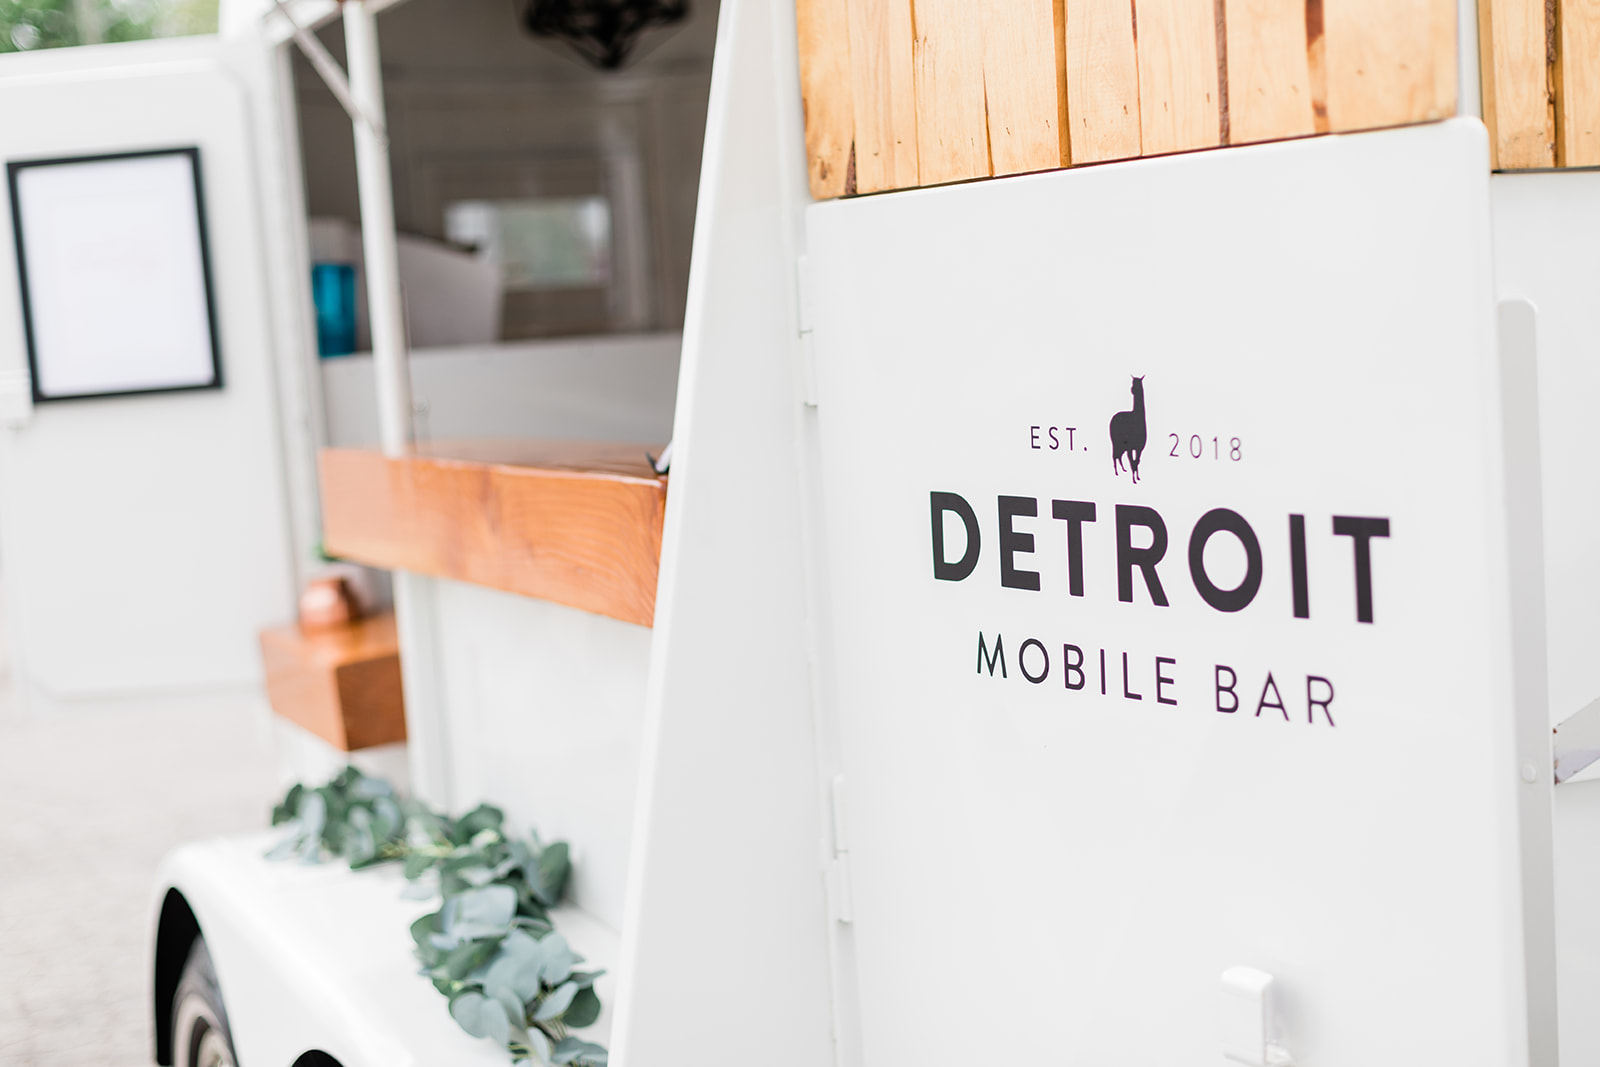 Detroit Mobile Bar at Tribe Detroit for Femology Event